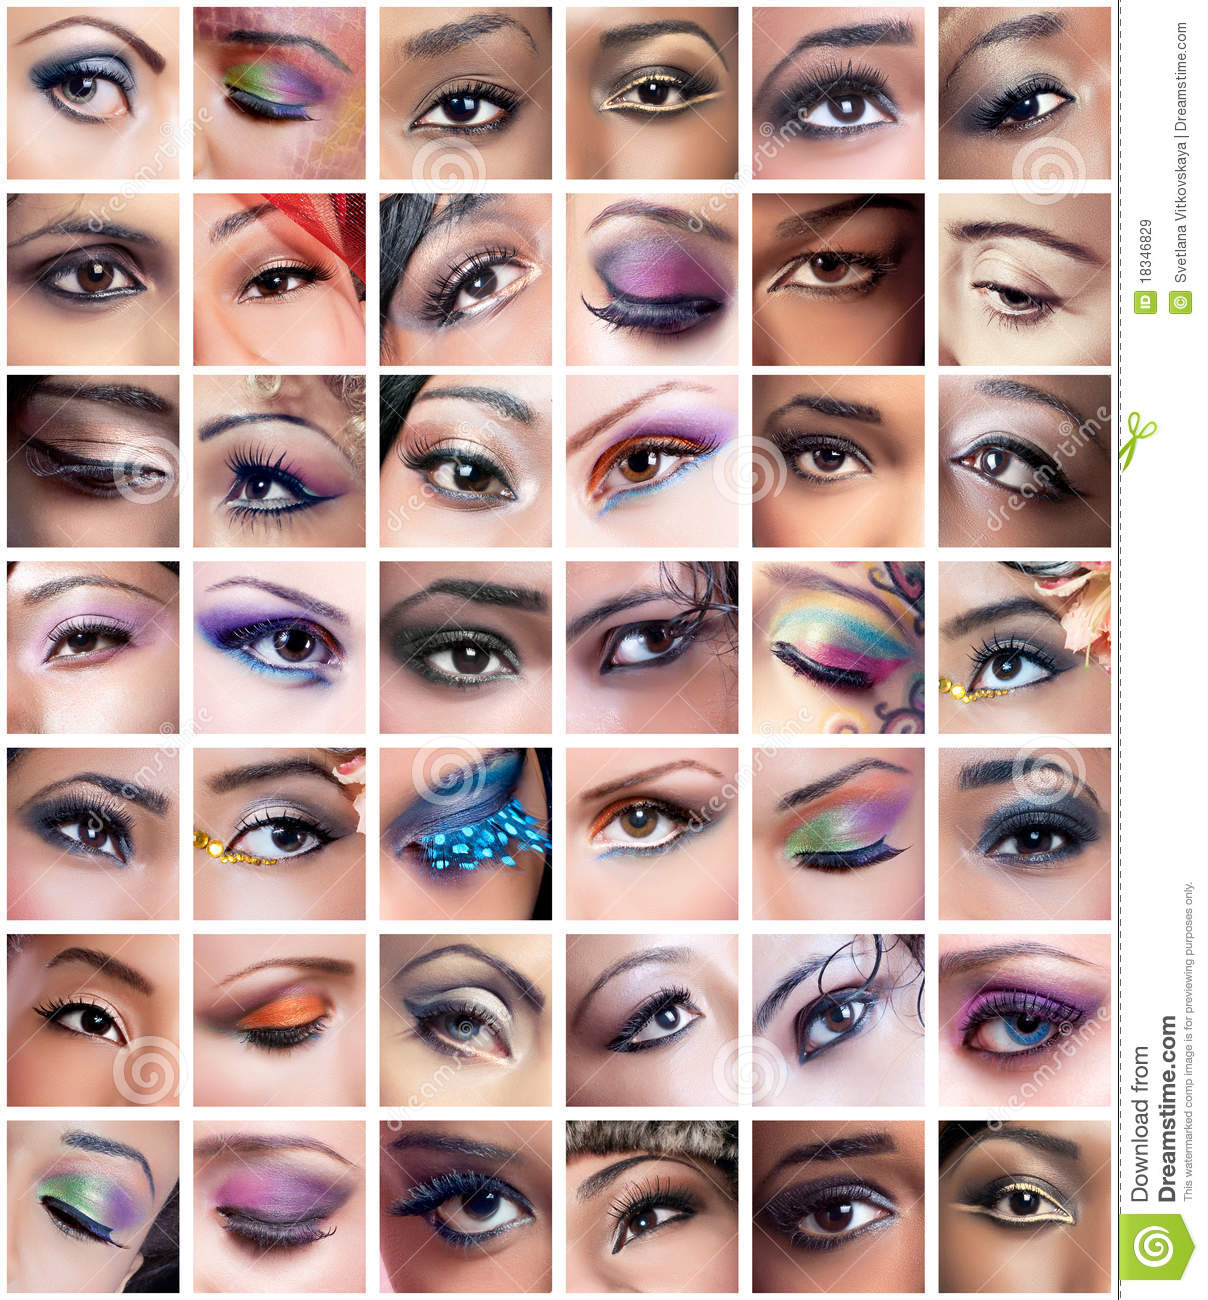 collage of female eyes images with creative makeup royalty